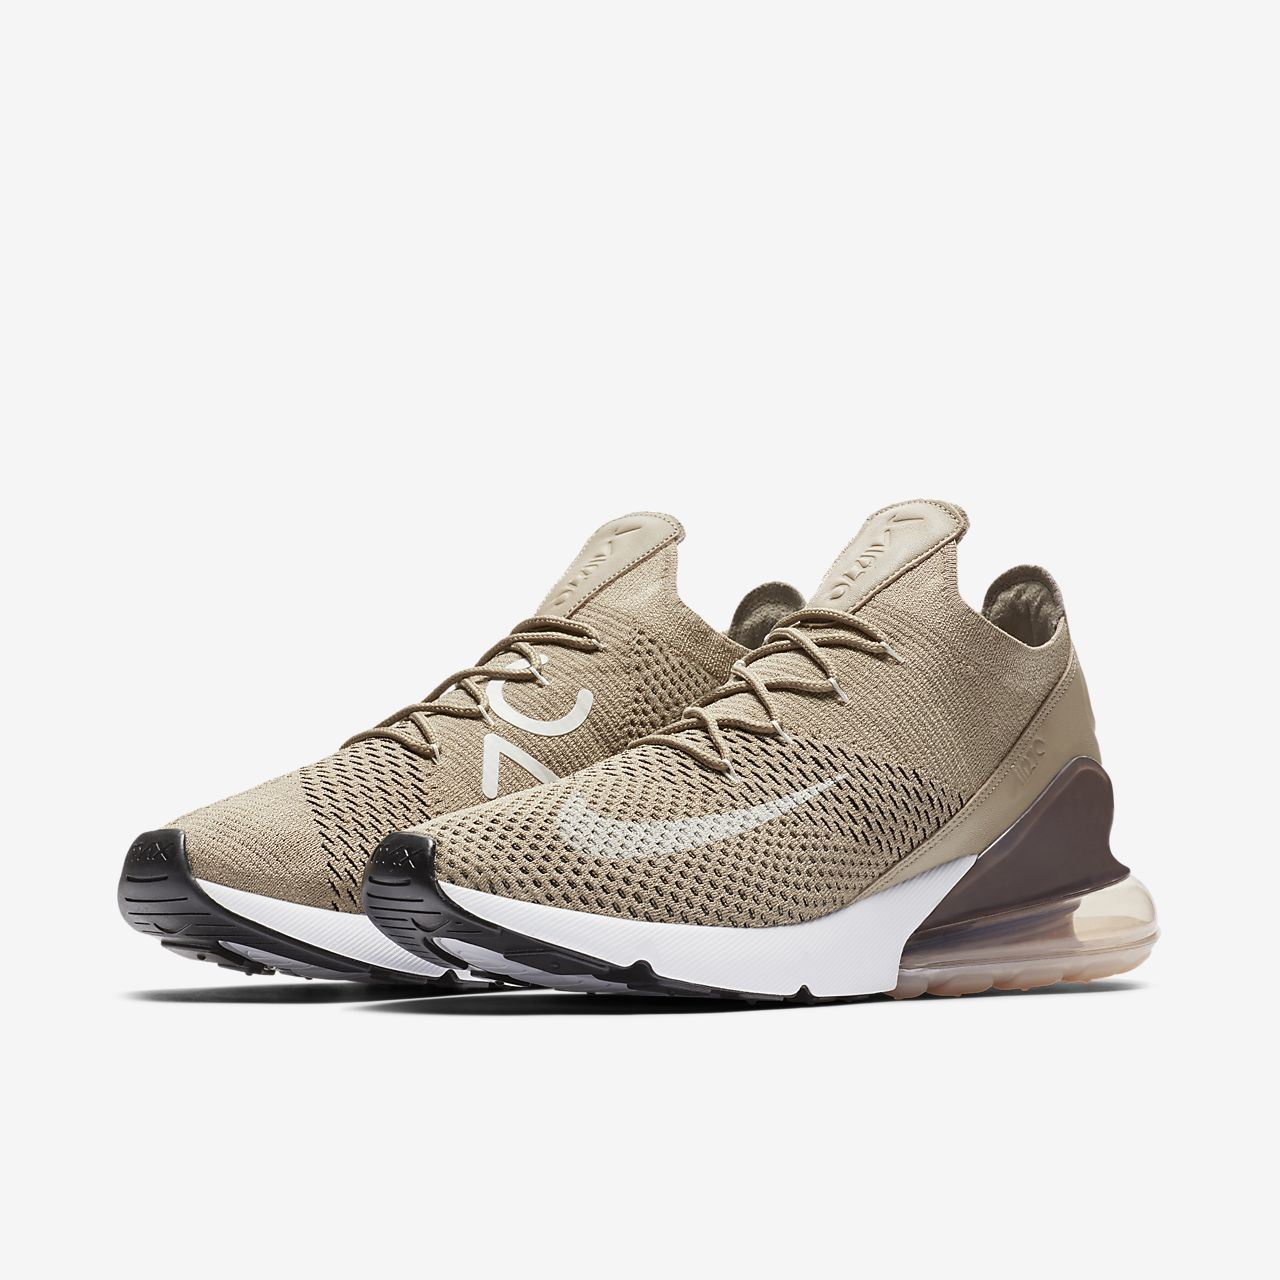 Nike Air Max 270 Flyknit Men's Shoe